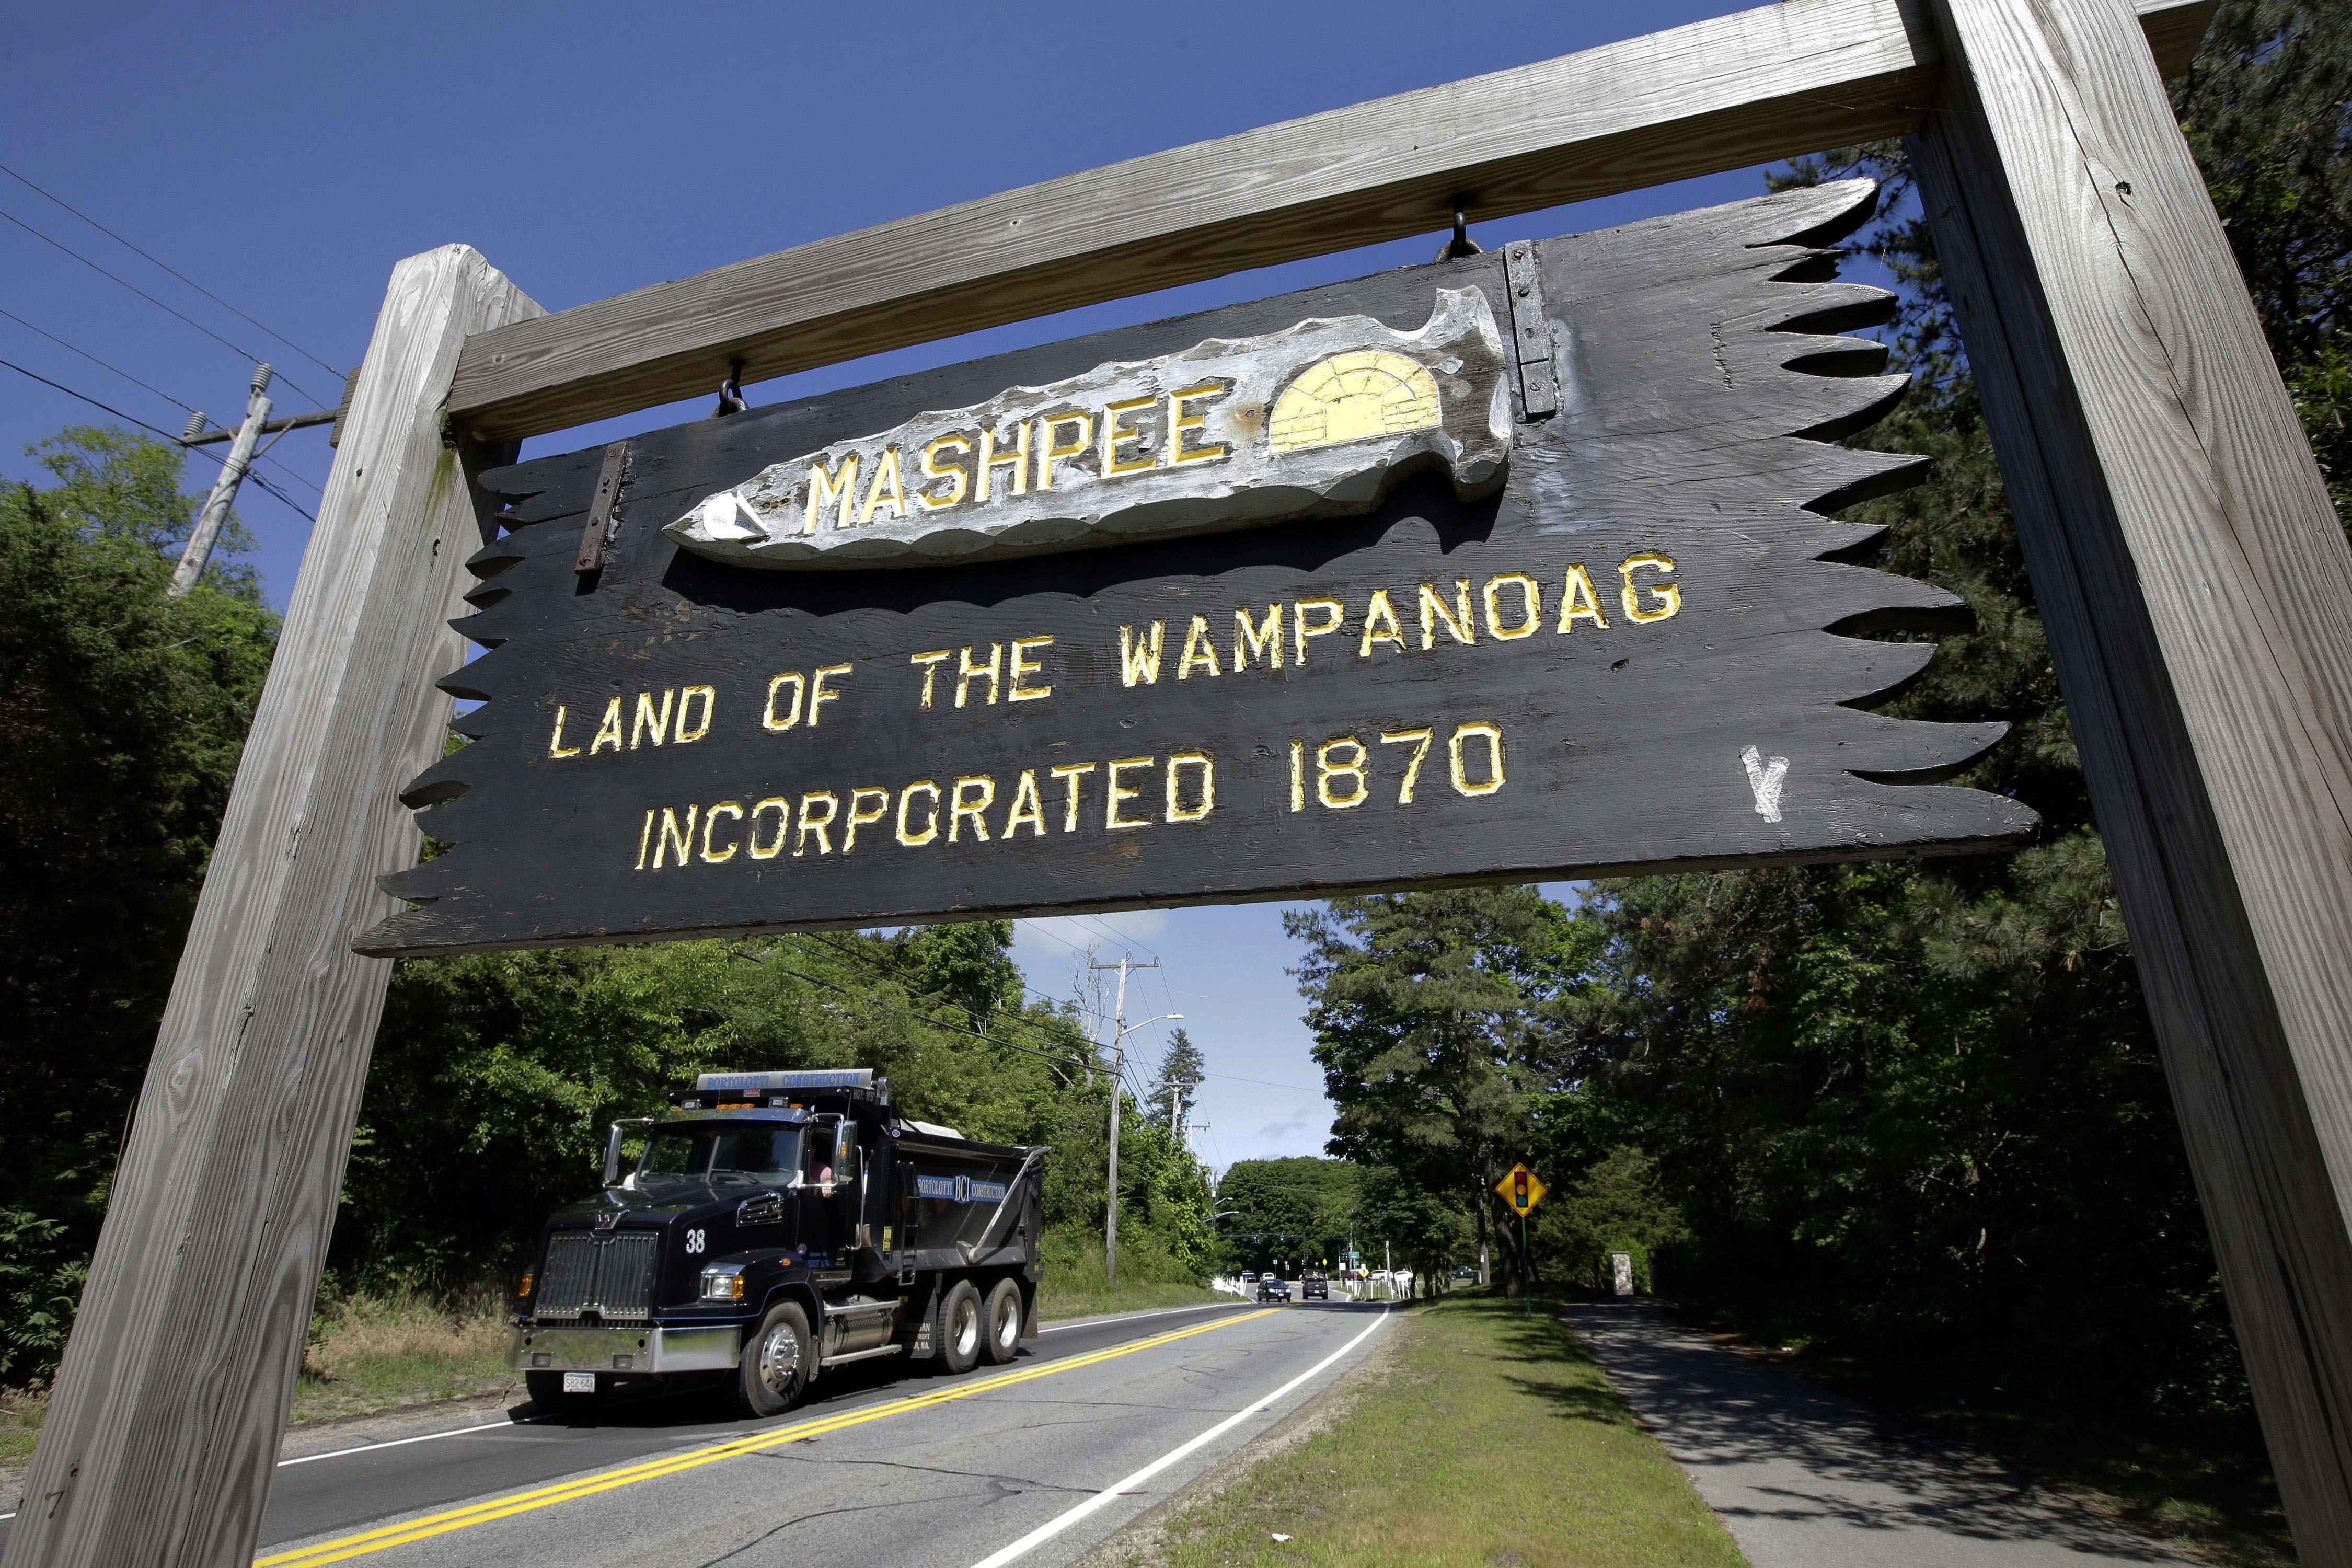 Mashpee Wampanoag sign in Massachusetts